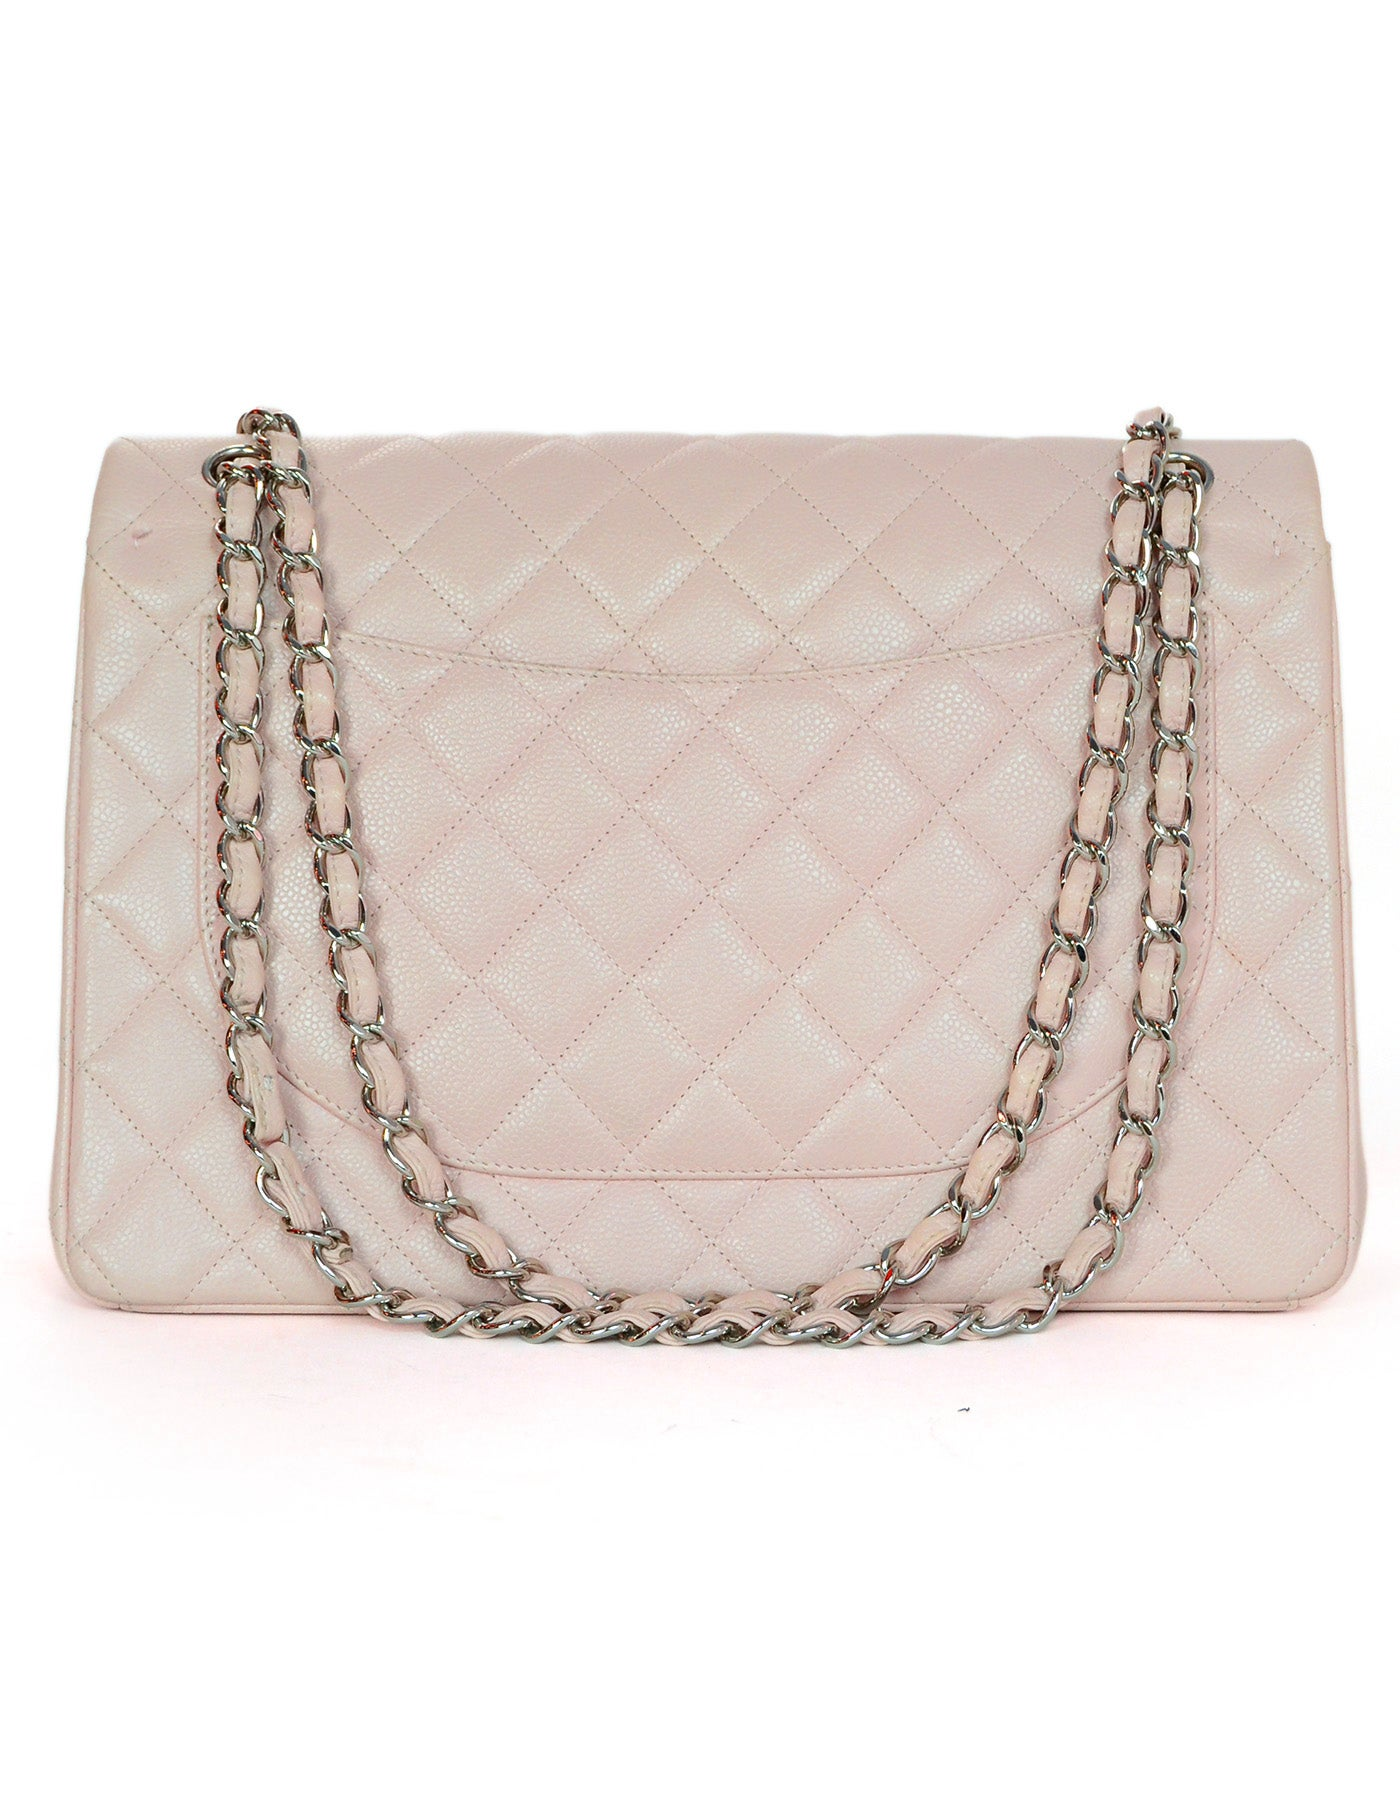 a6819d6de6fb Chanel Blush Caviar Leather Quilted Maxi Double Flap Classic Bag w. DB and  Box For Sale at 1stdibs